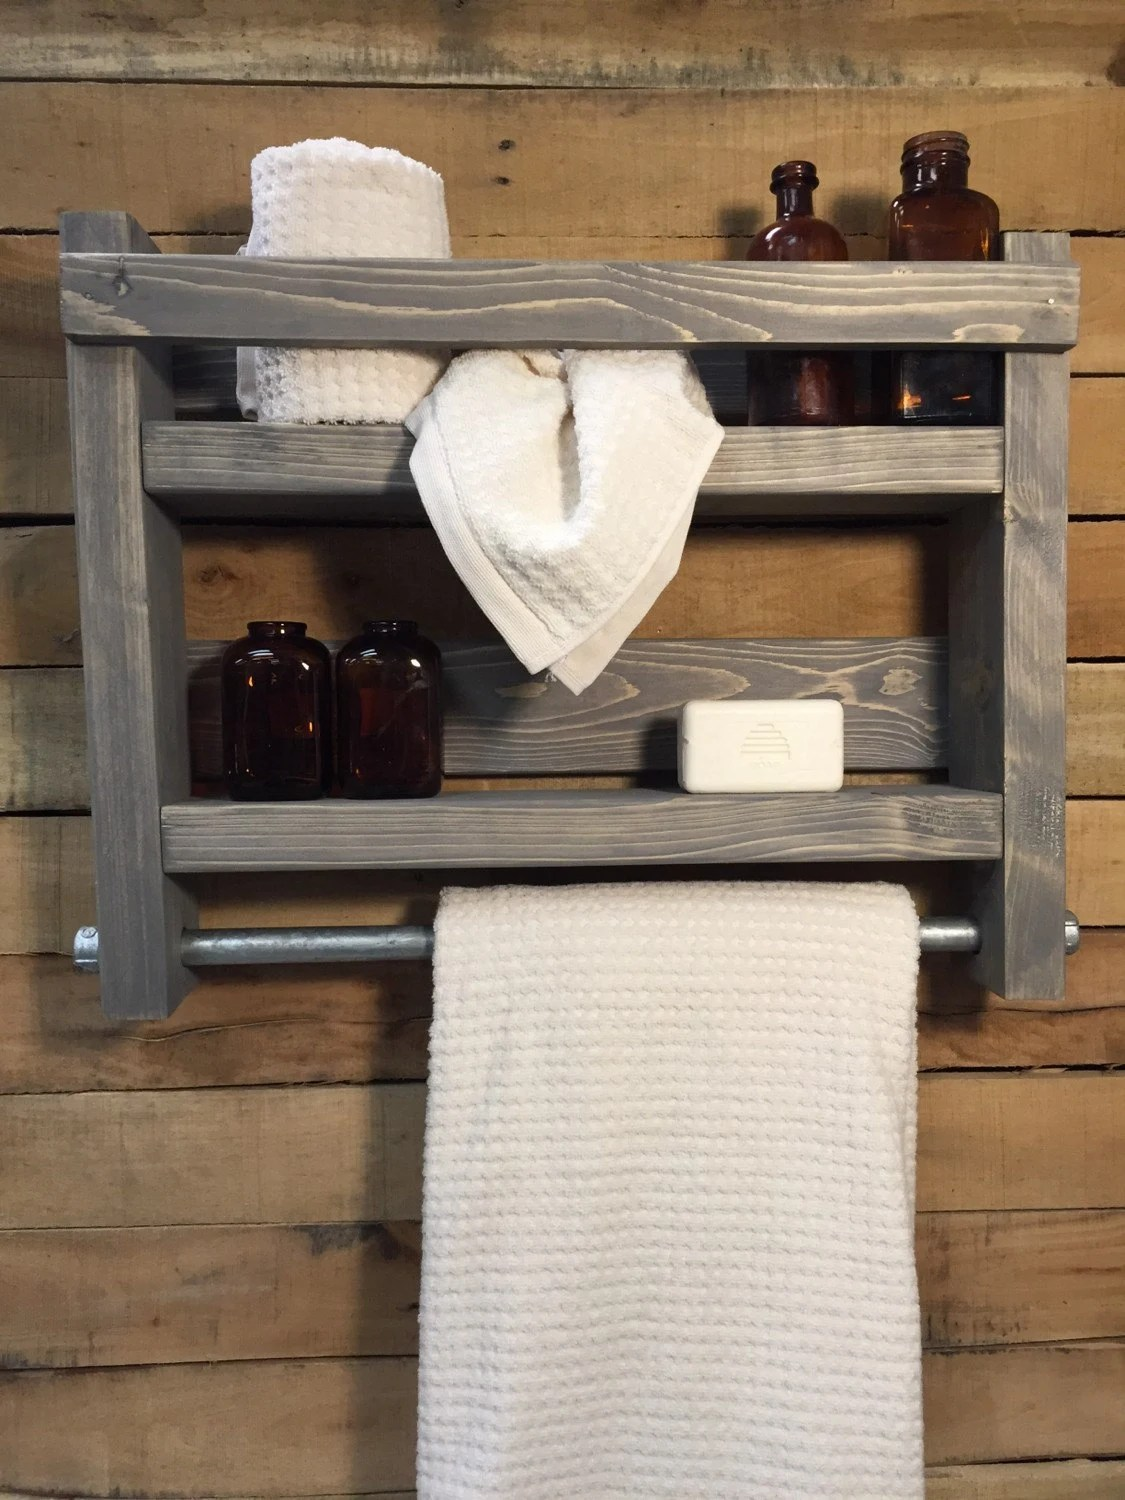 Holz Handtuchhalter Bathroom Towel Rack Wood Towel Rack Bathroom Shelf